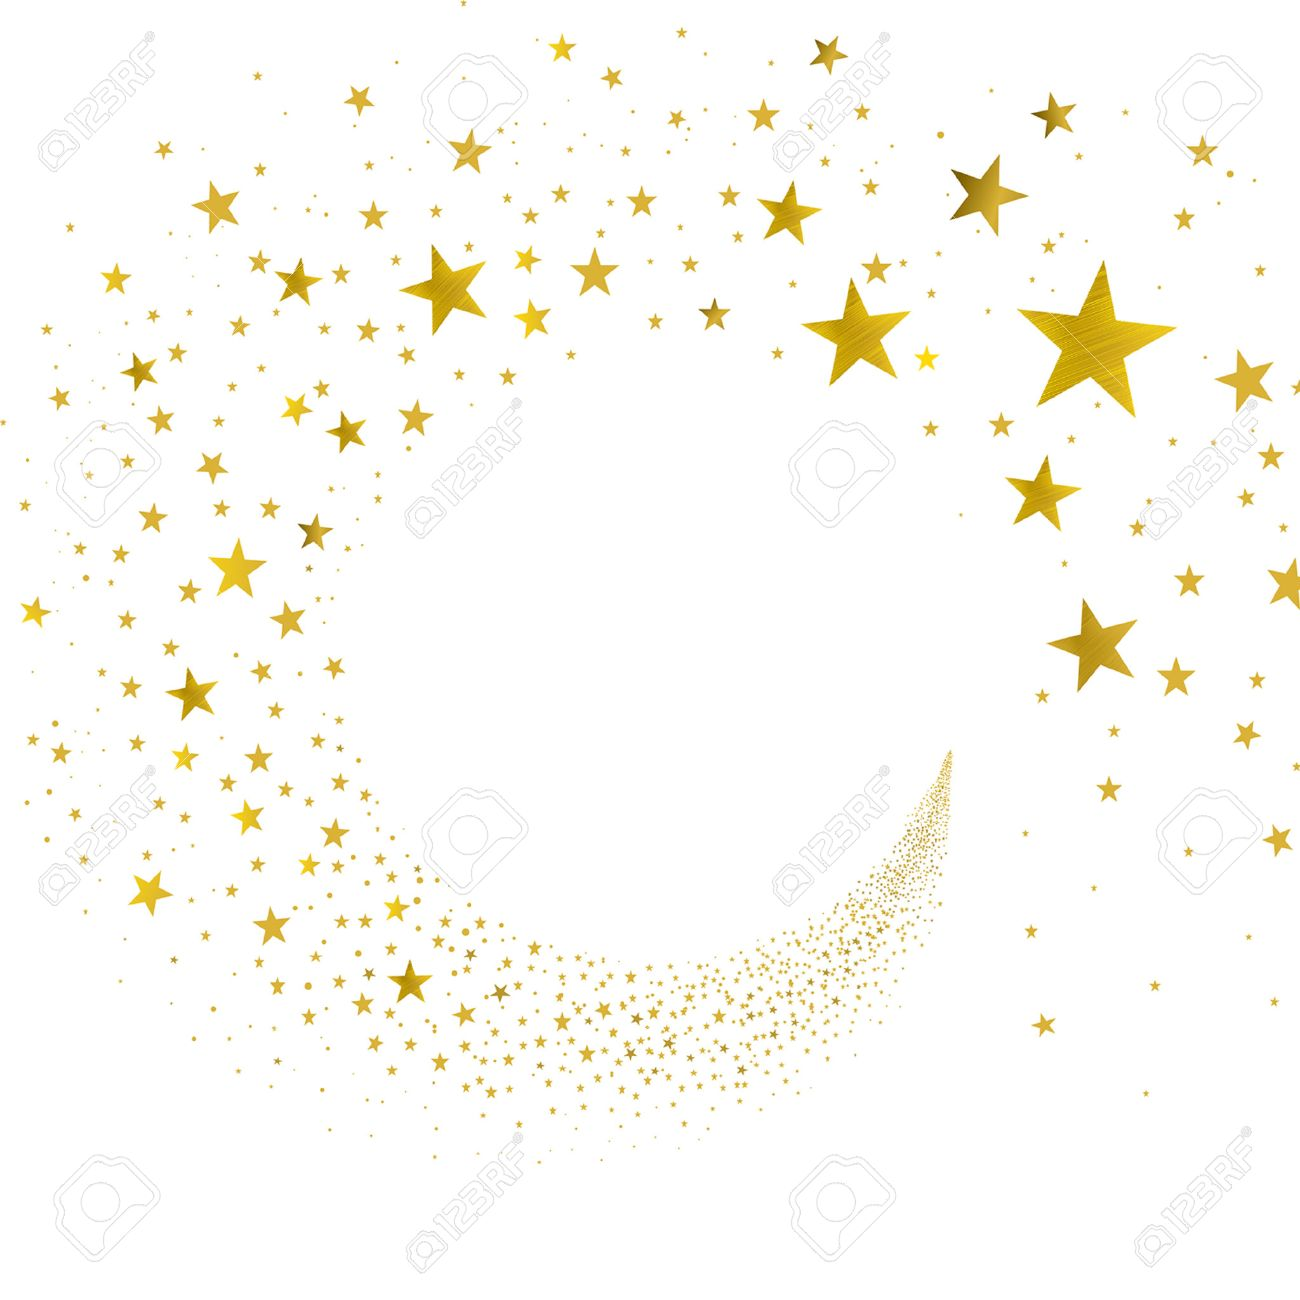 gold stars stock photos royalty free gold stars images